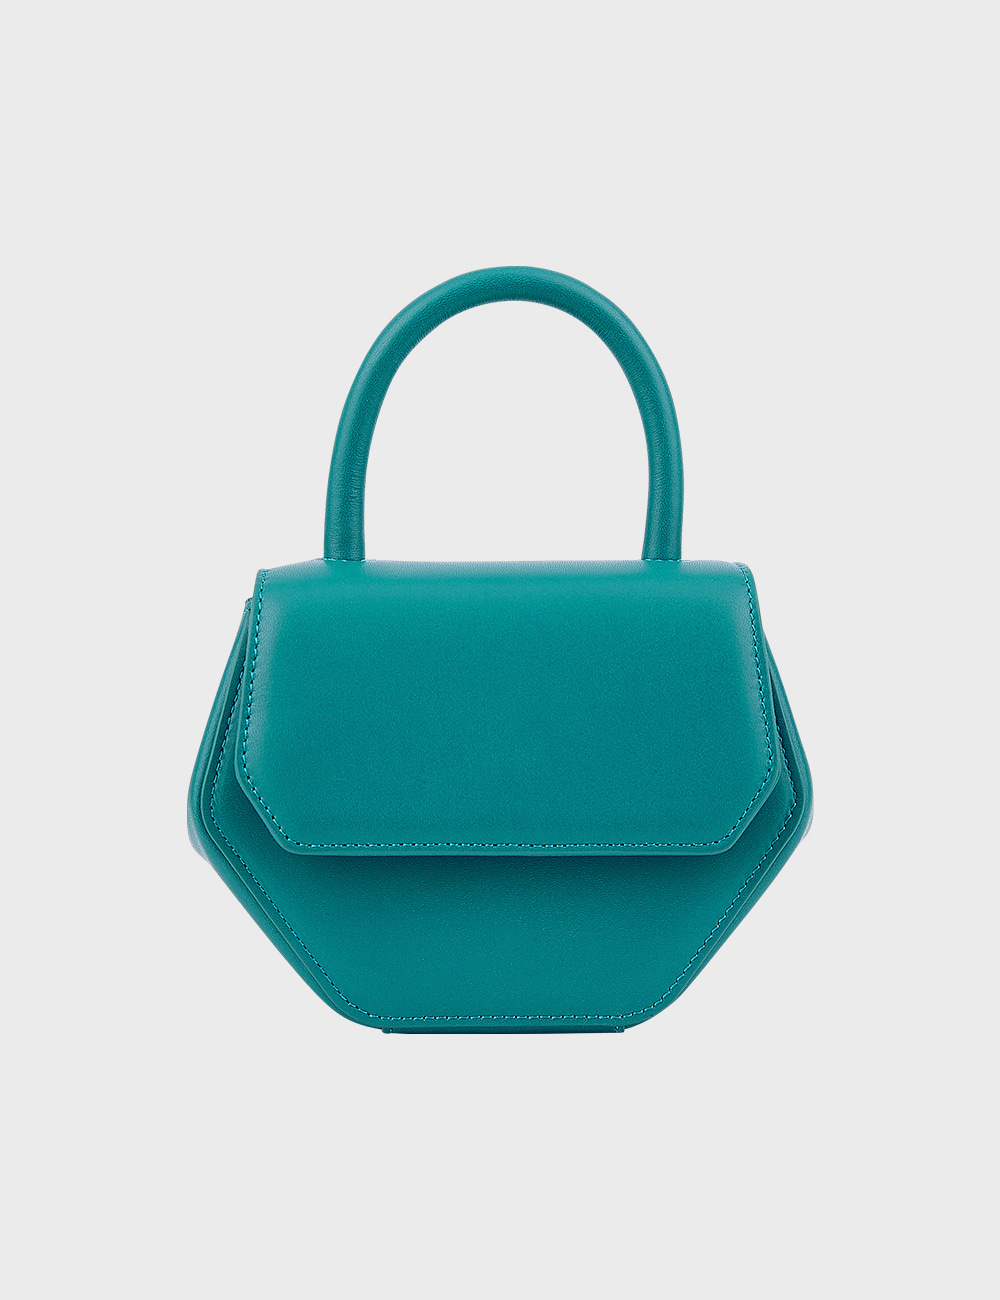 MAISON246,246 MAGOT SMALL BAG - EMERALDALD,No.246